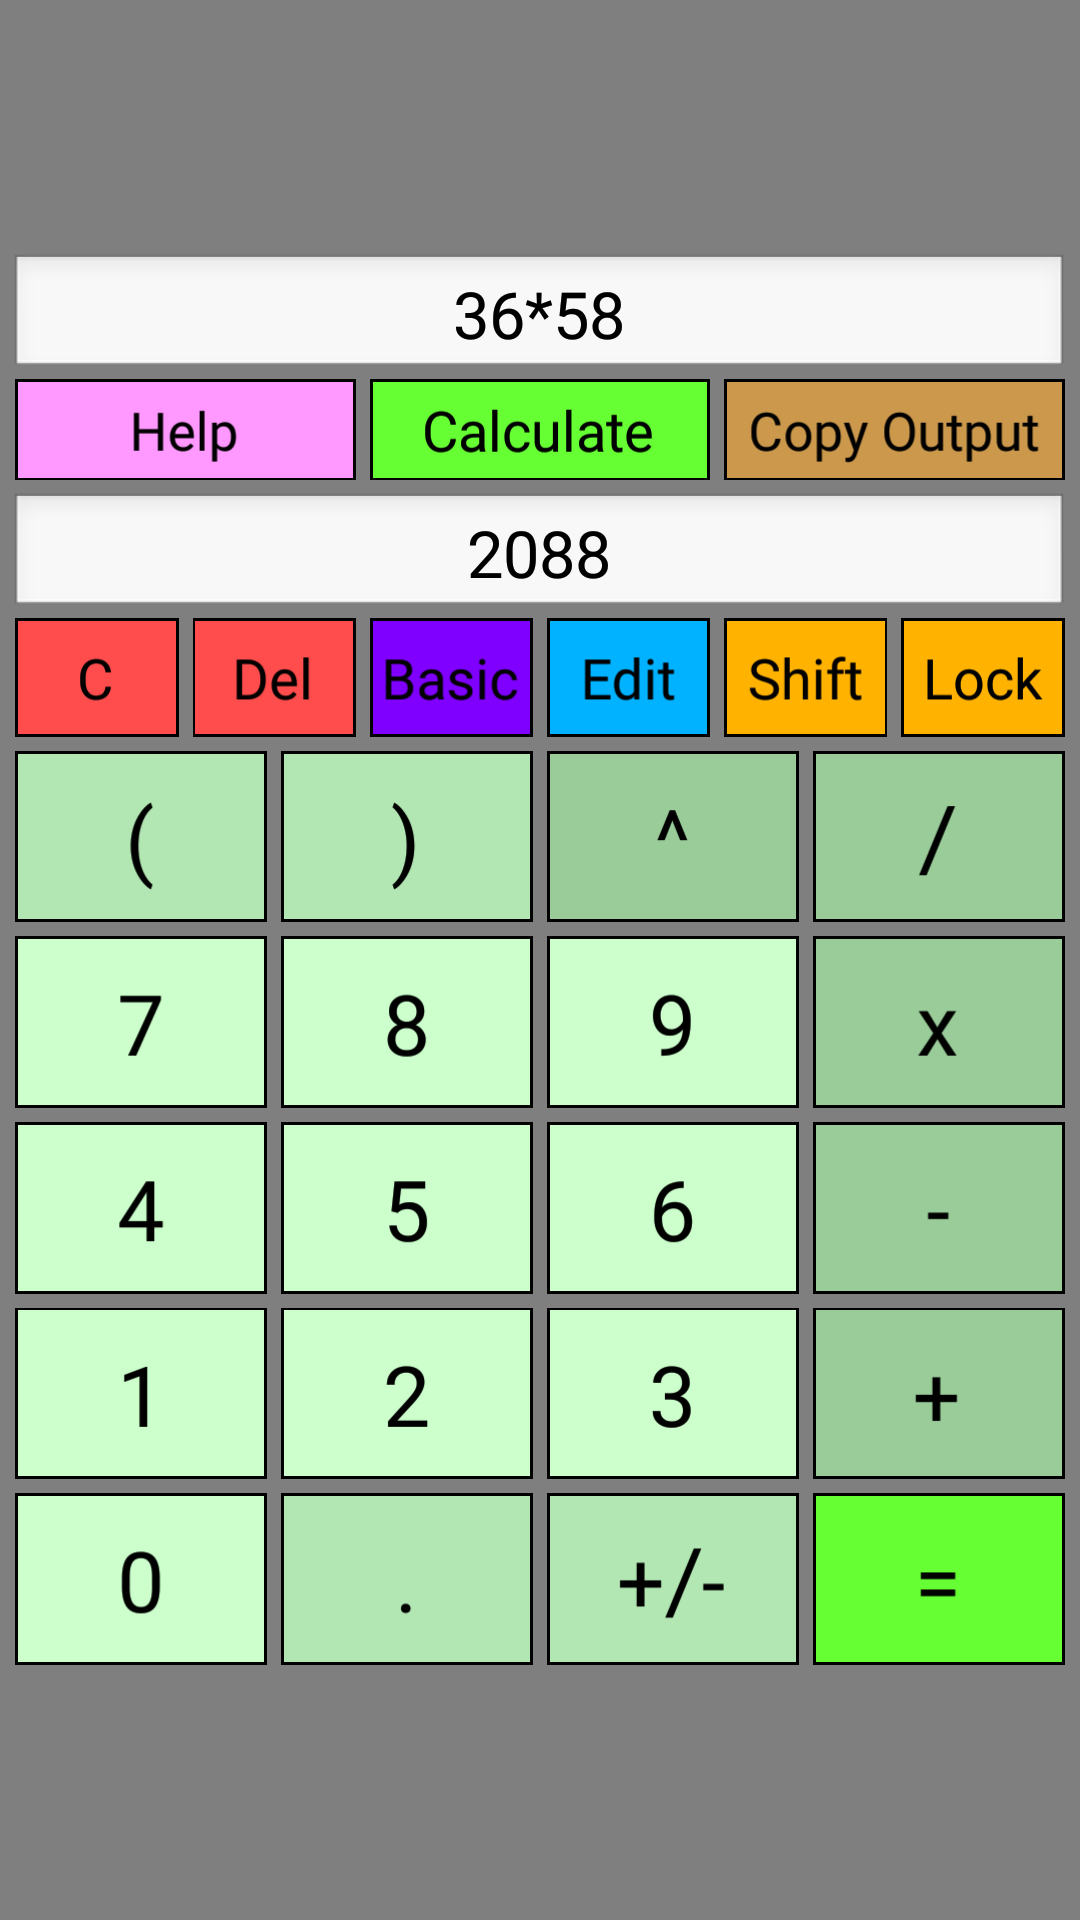 WyeSoft - Downloads - WyeSoft Lua Calc (Android Version)